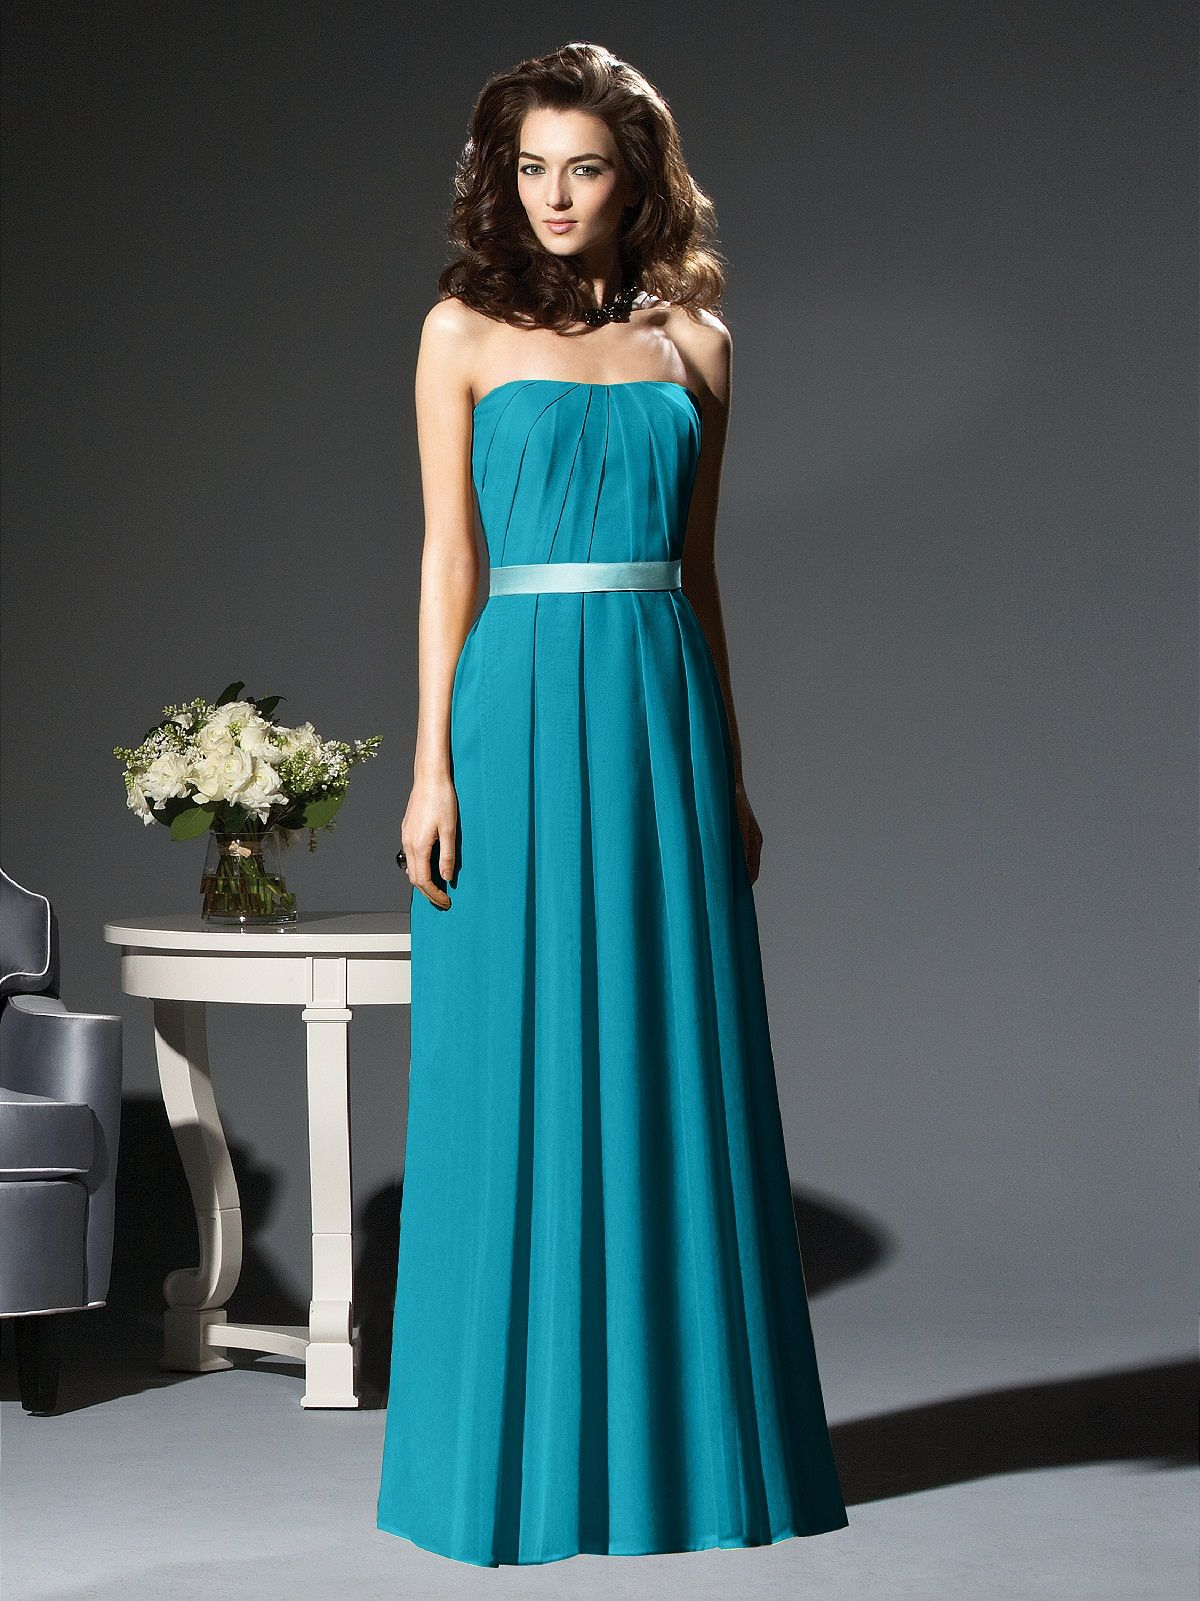 Dessy collection style 2810 oasisspa wedding ideas cheap marigold knee length strapless inverted v pleat detail chiffon bridesmaid dress is on sale buy marigold knee length strapless inverted v pleat detail ombrellifo Gallery